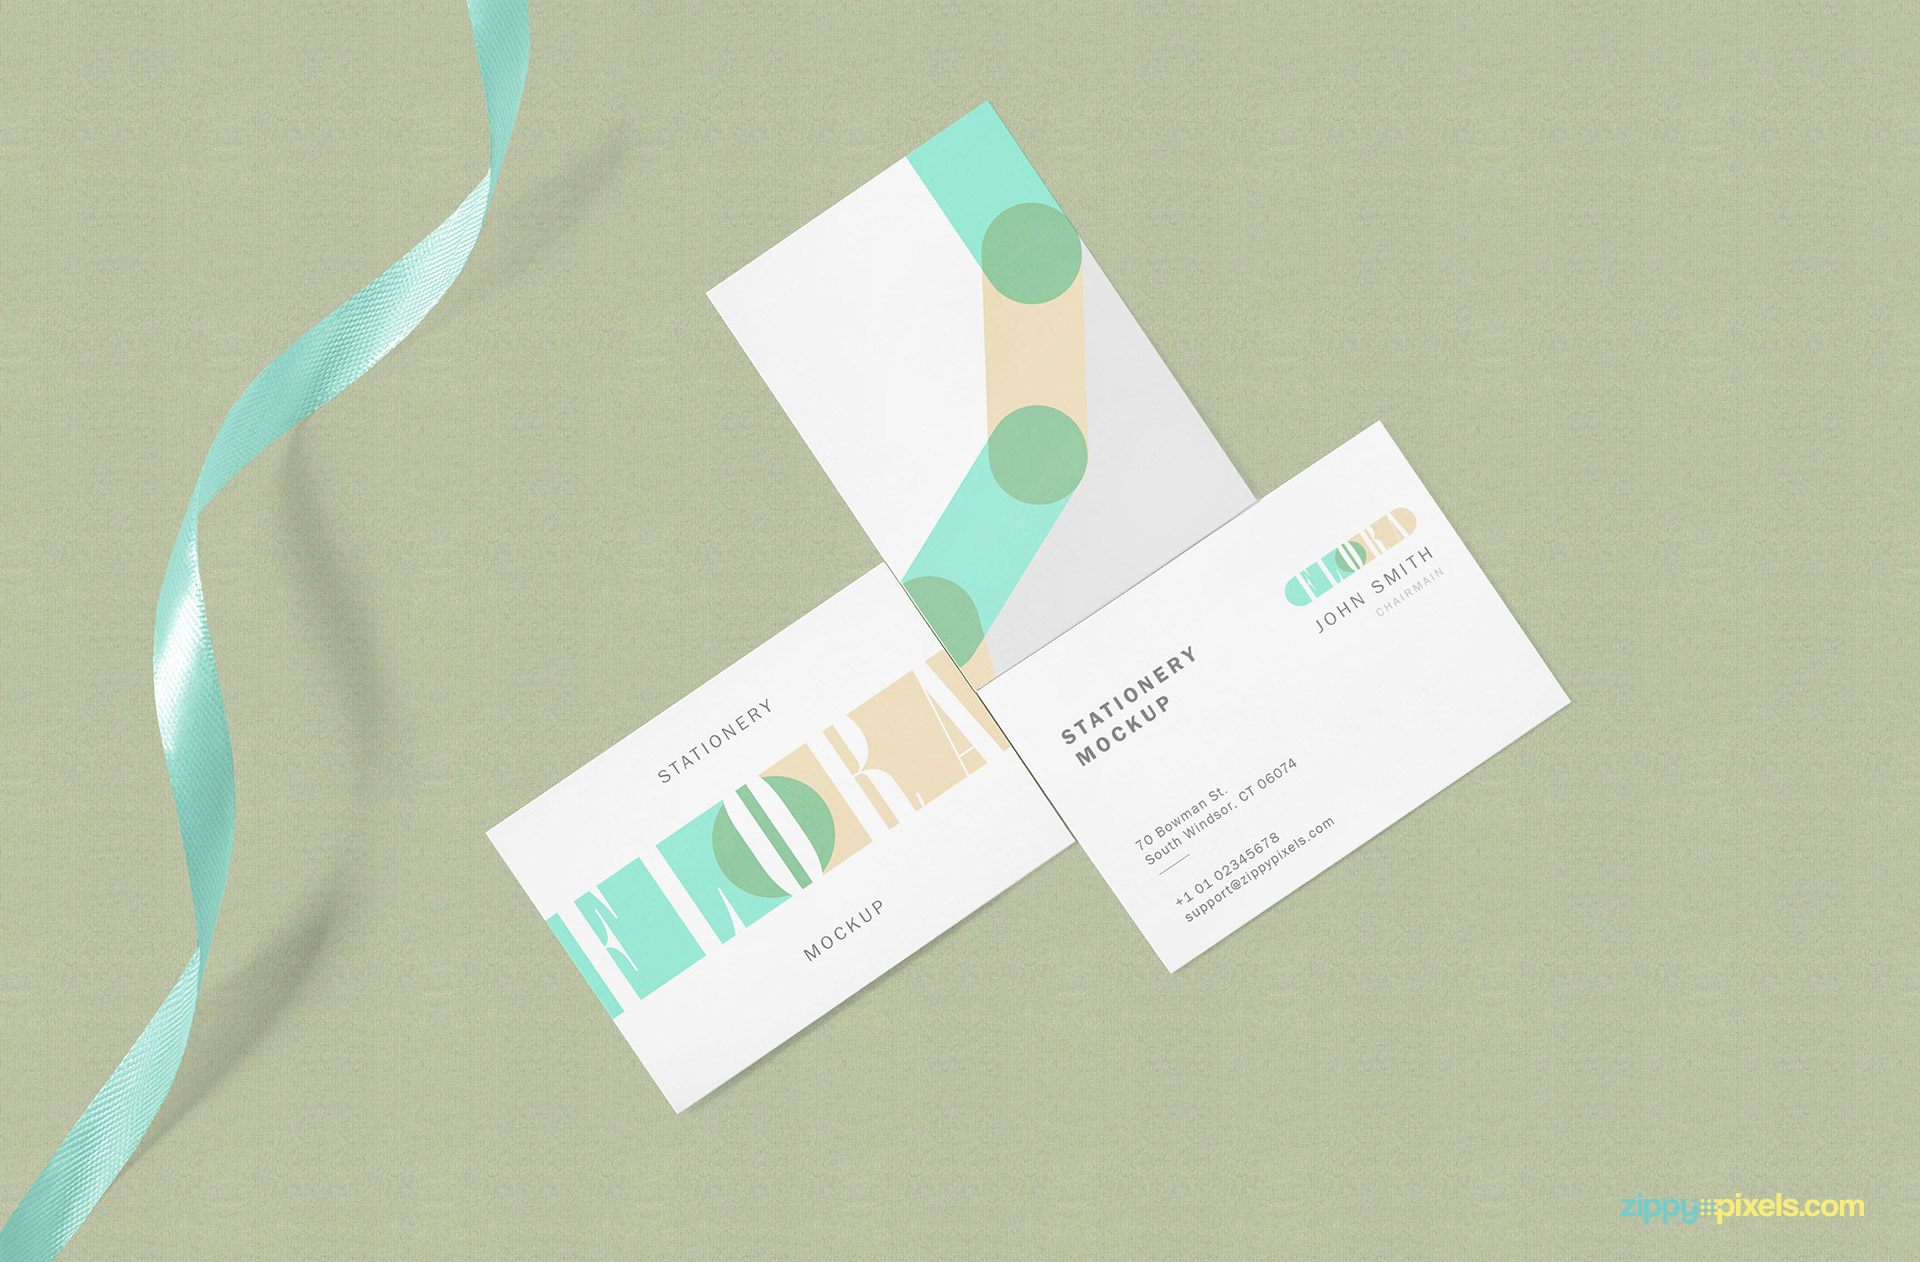 Fully customizable three business cards.